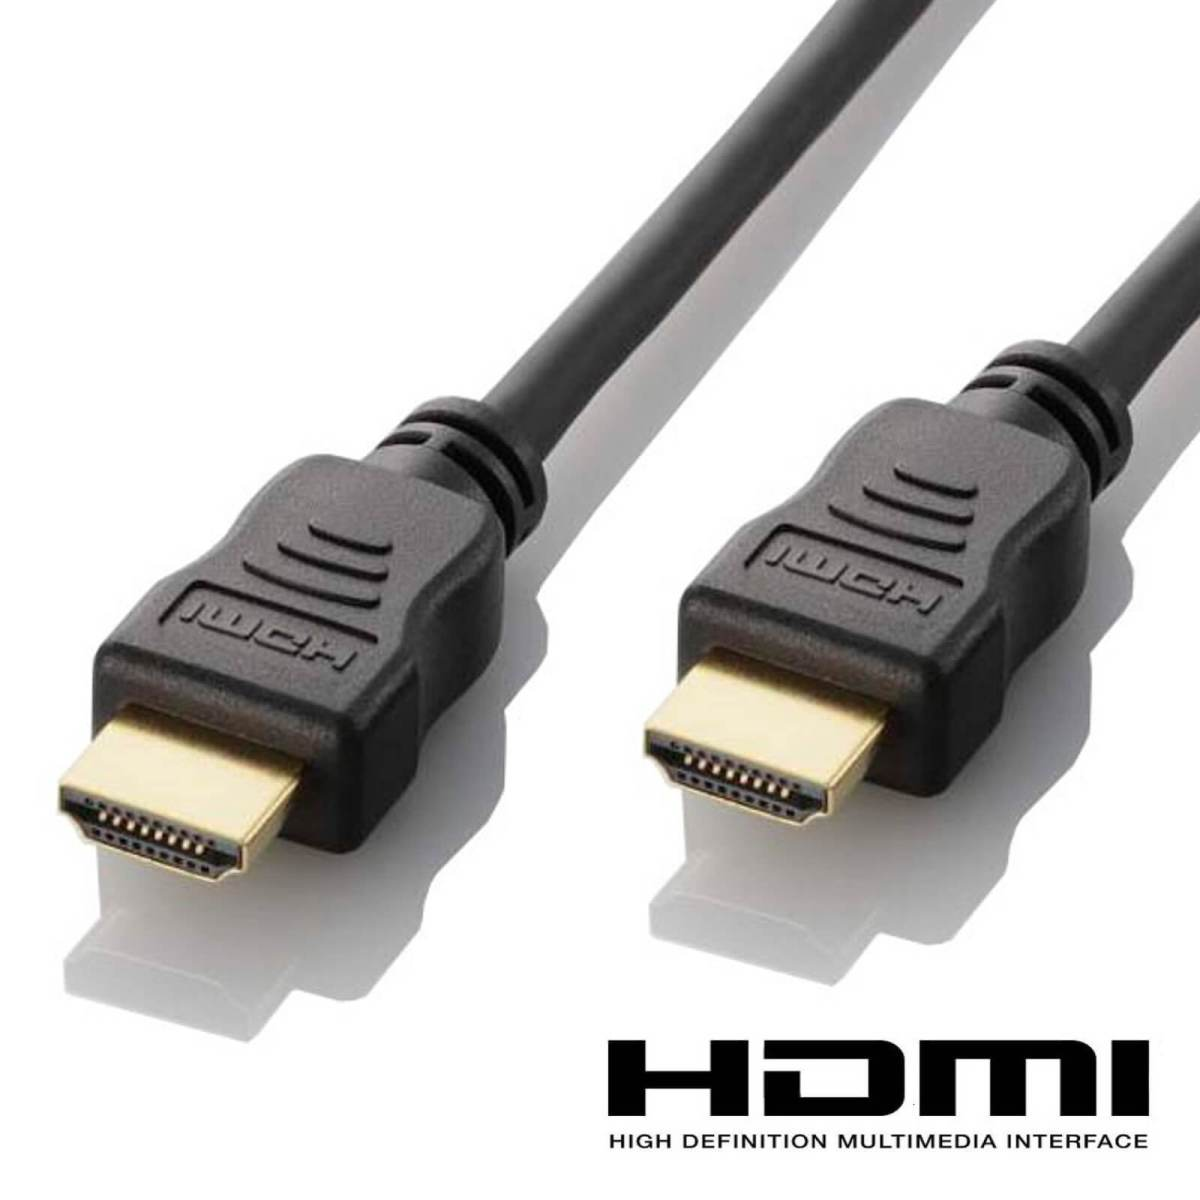 medion erazer laptop hdmi to hdmi 4k ultra hd tv monitor 2m gold lead wire cord cable dorothy. Black Bedroom Furniture Sets. Home Design Ideas